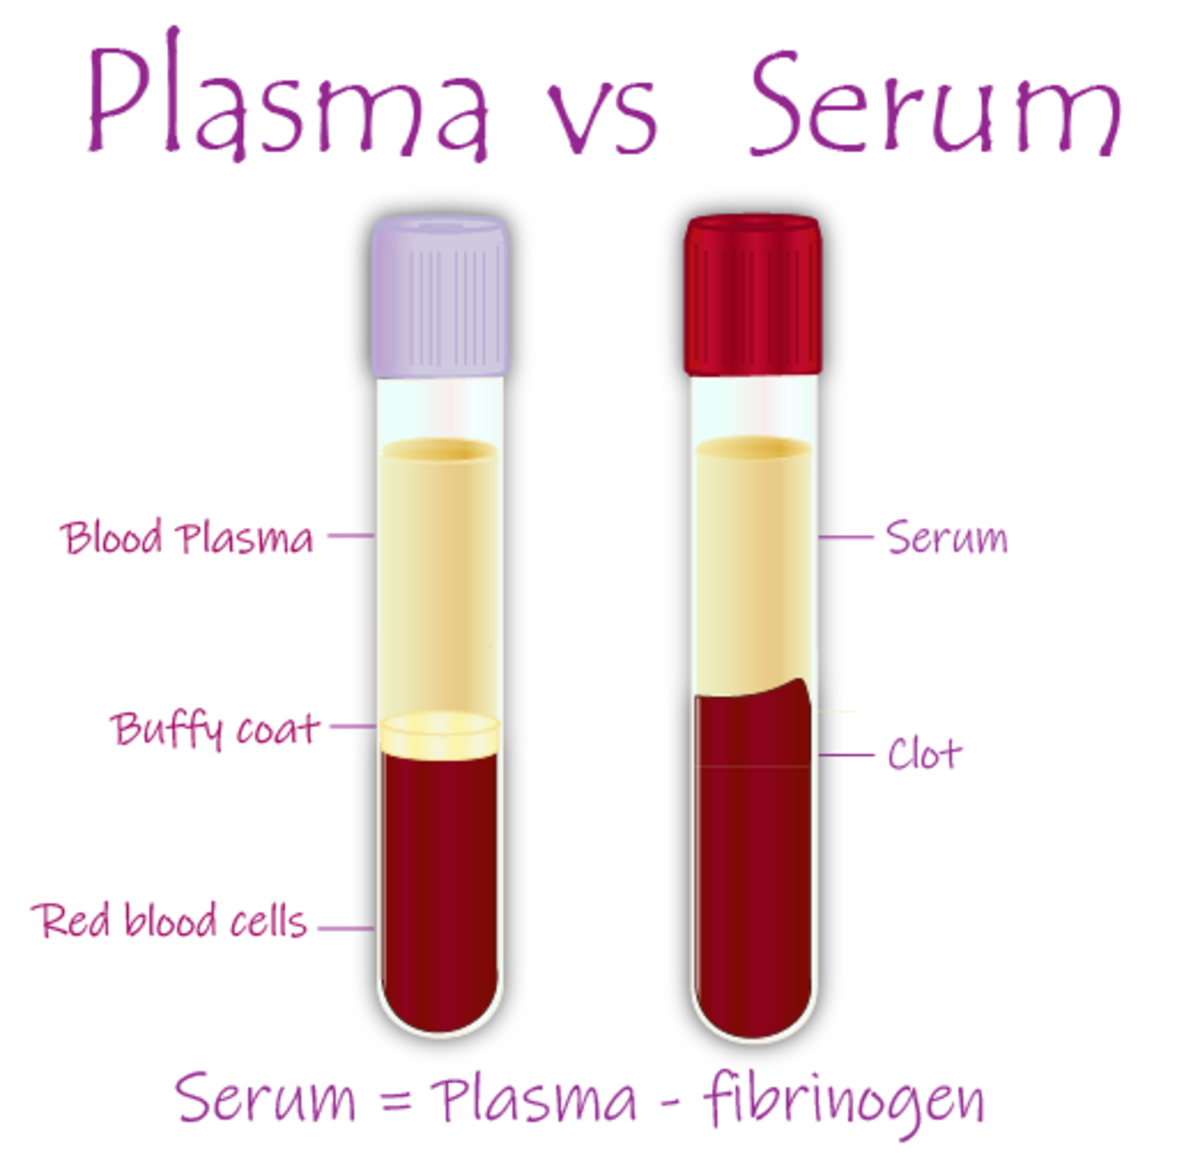 What Is the Difference Between Plasma and Serum?